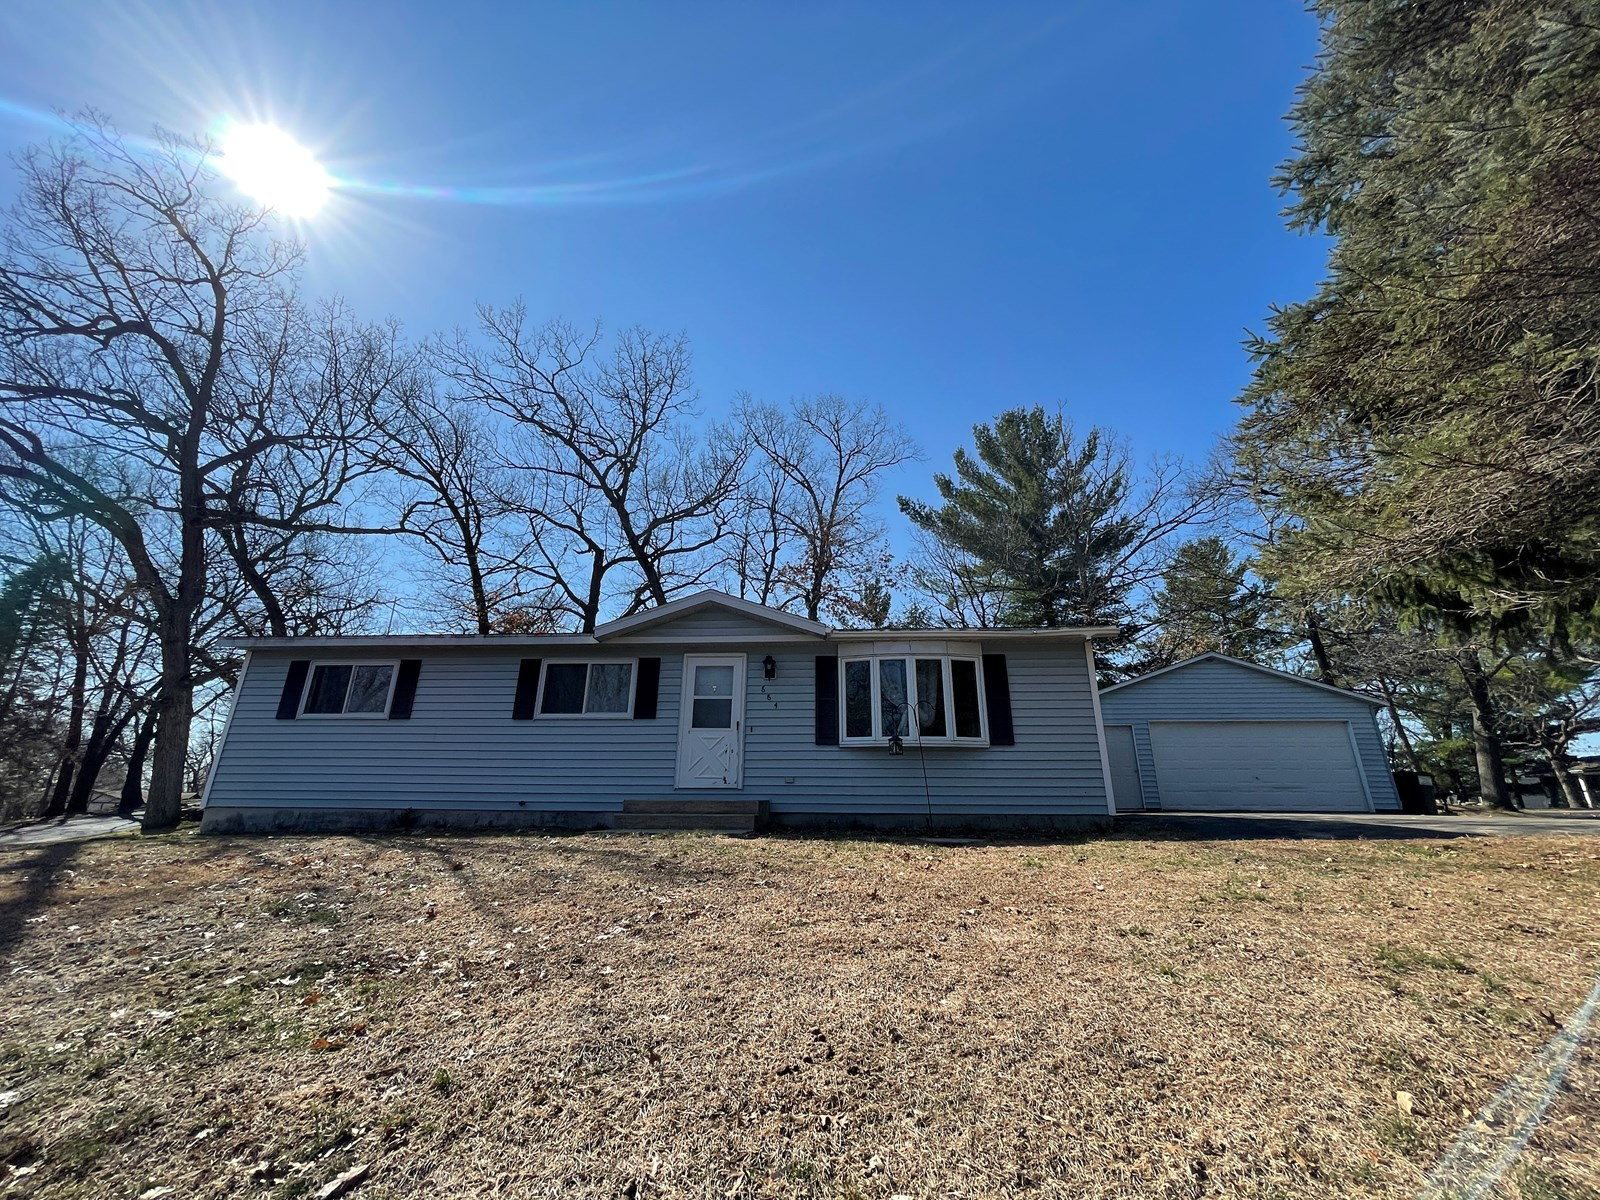 Ranch Home For Sale, City of Waupaca